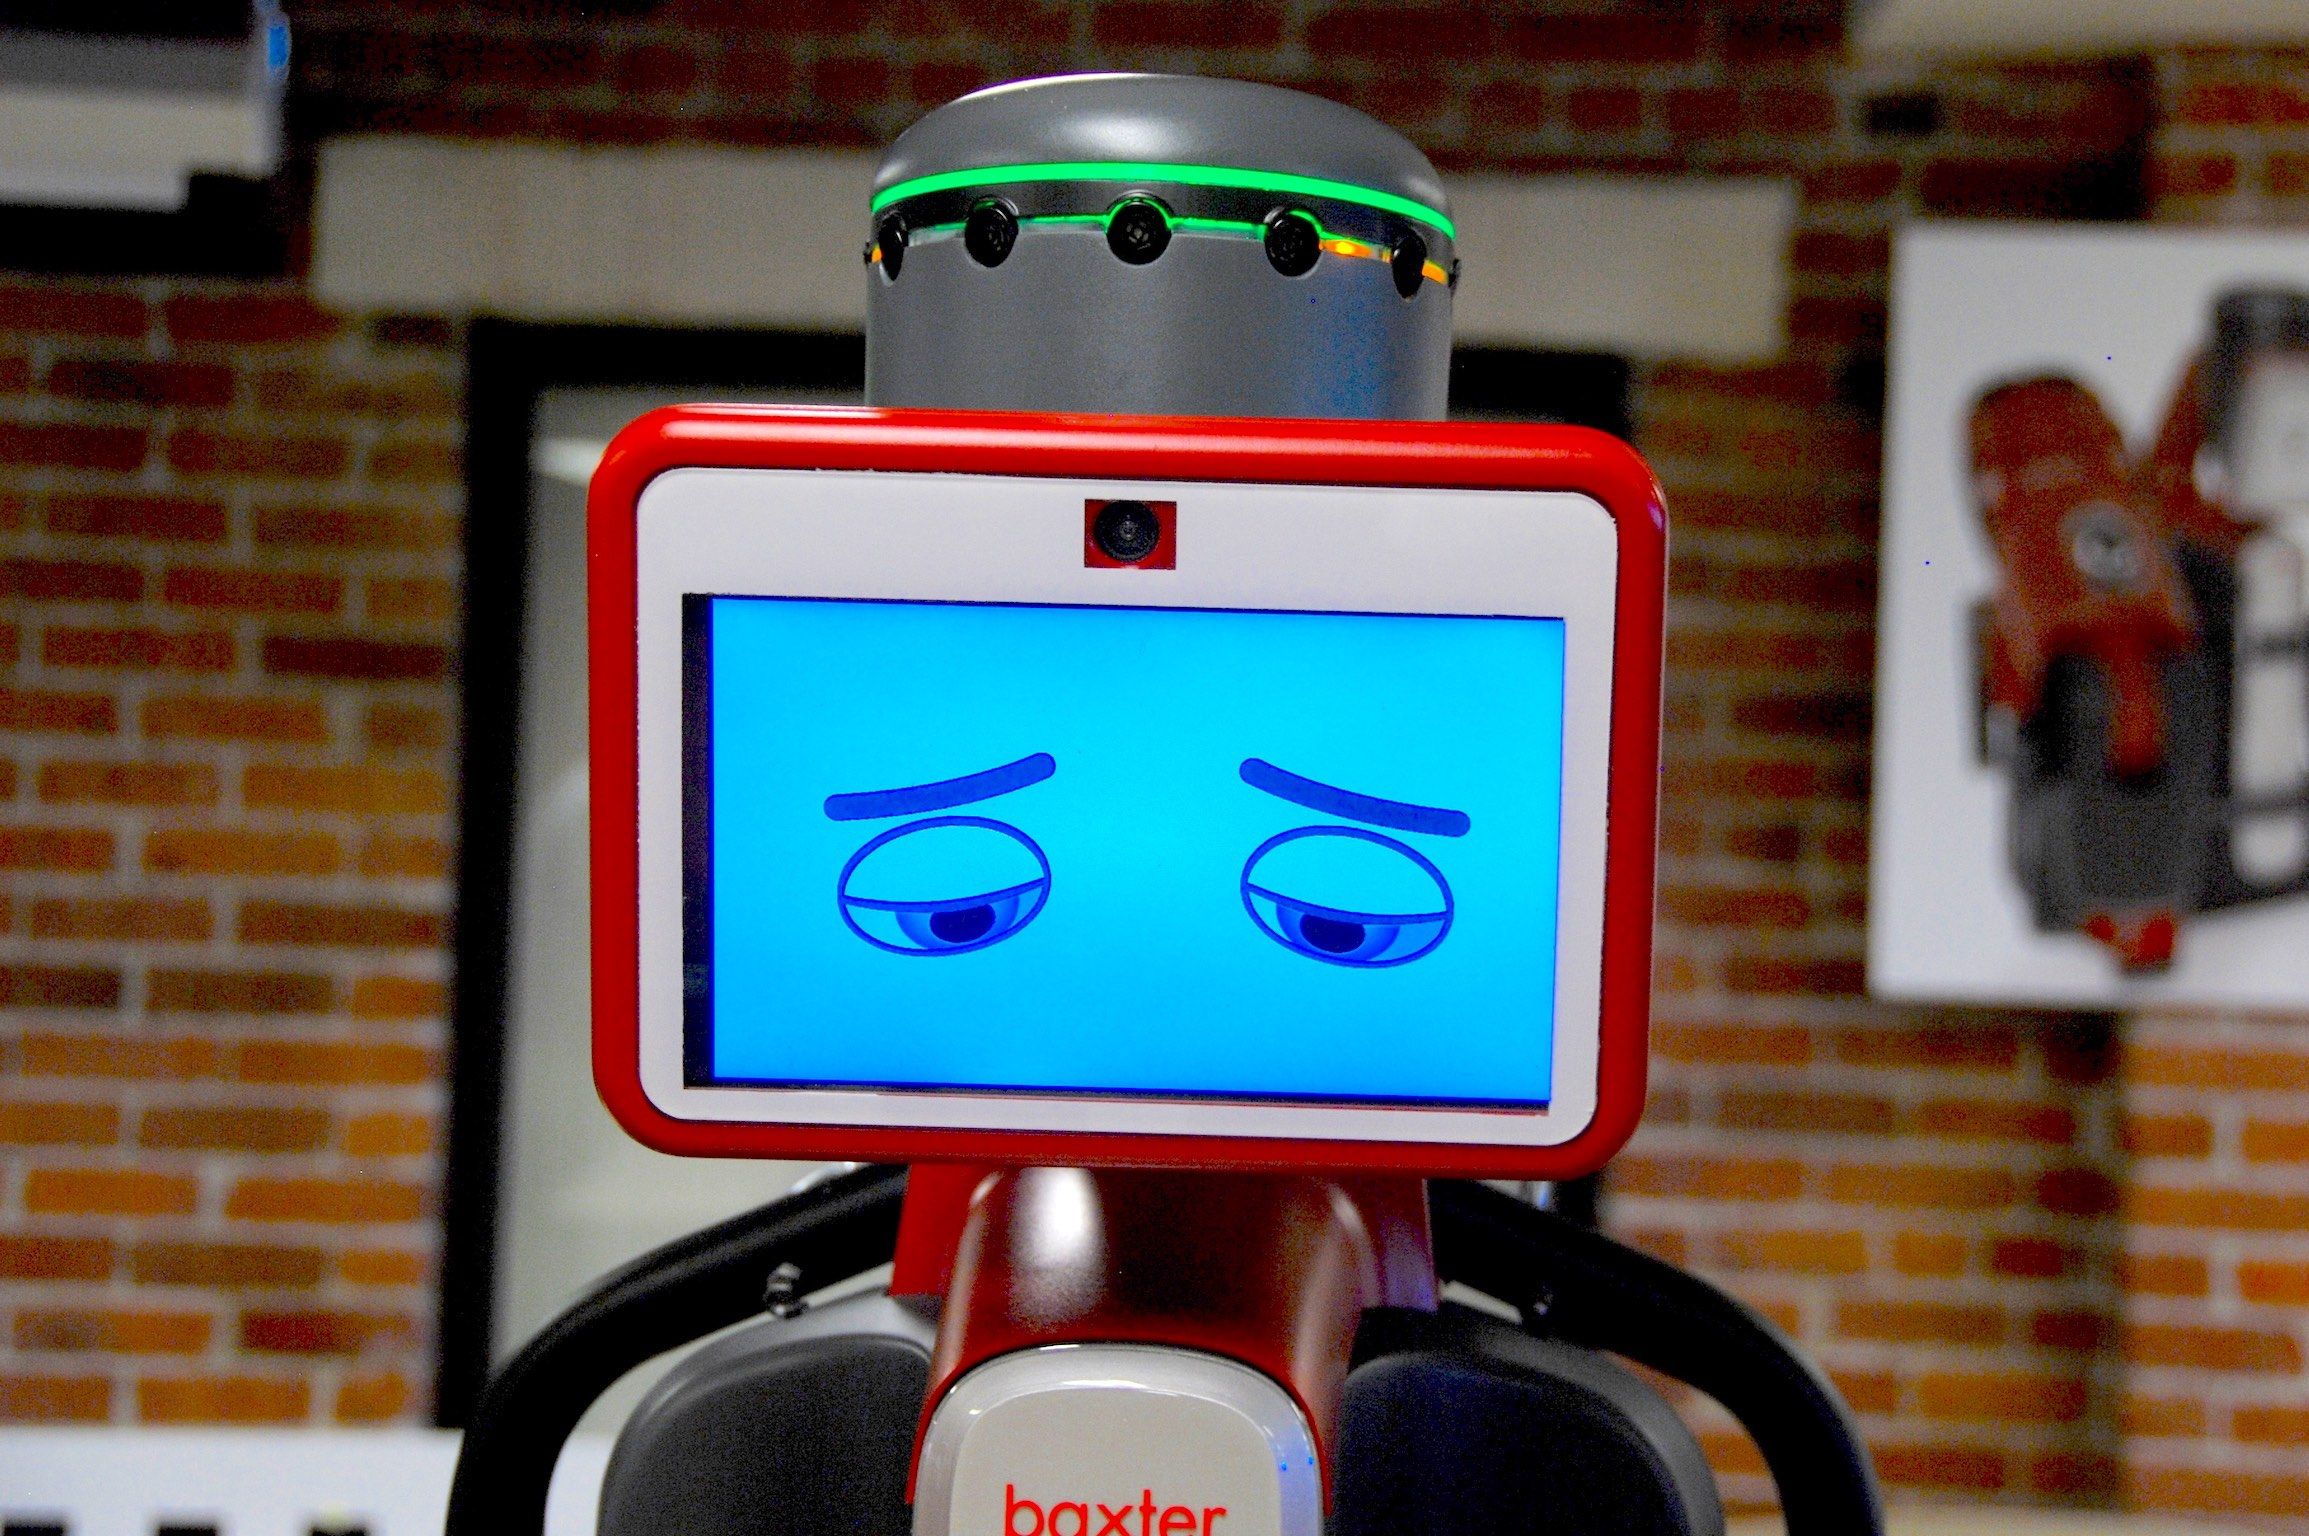 Rethink Robotics' Baxter collaborative robot